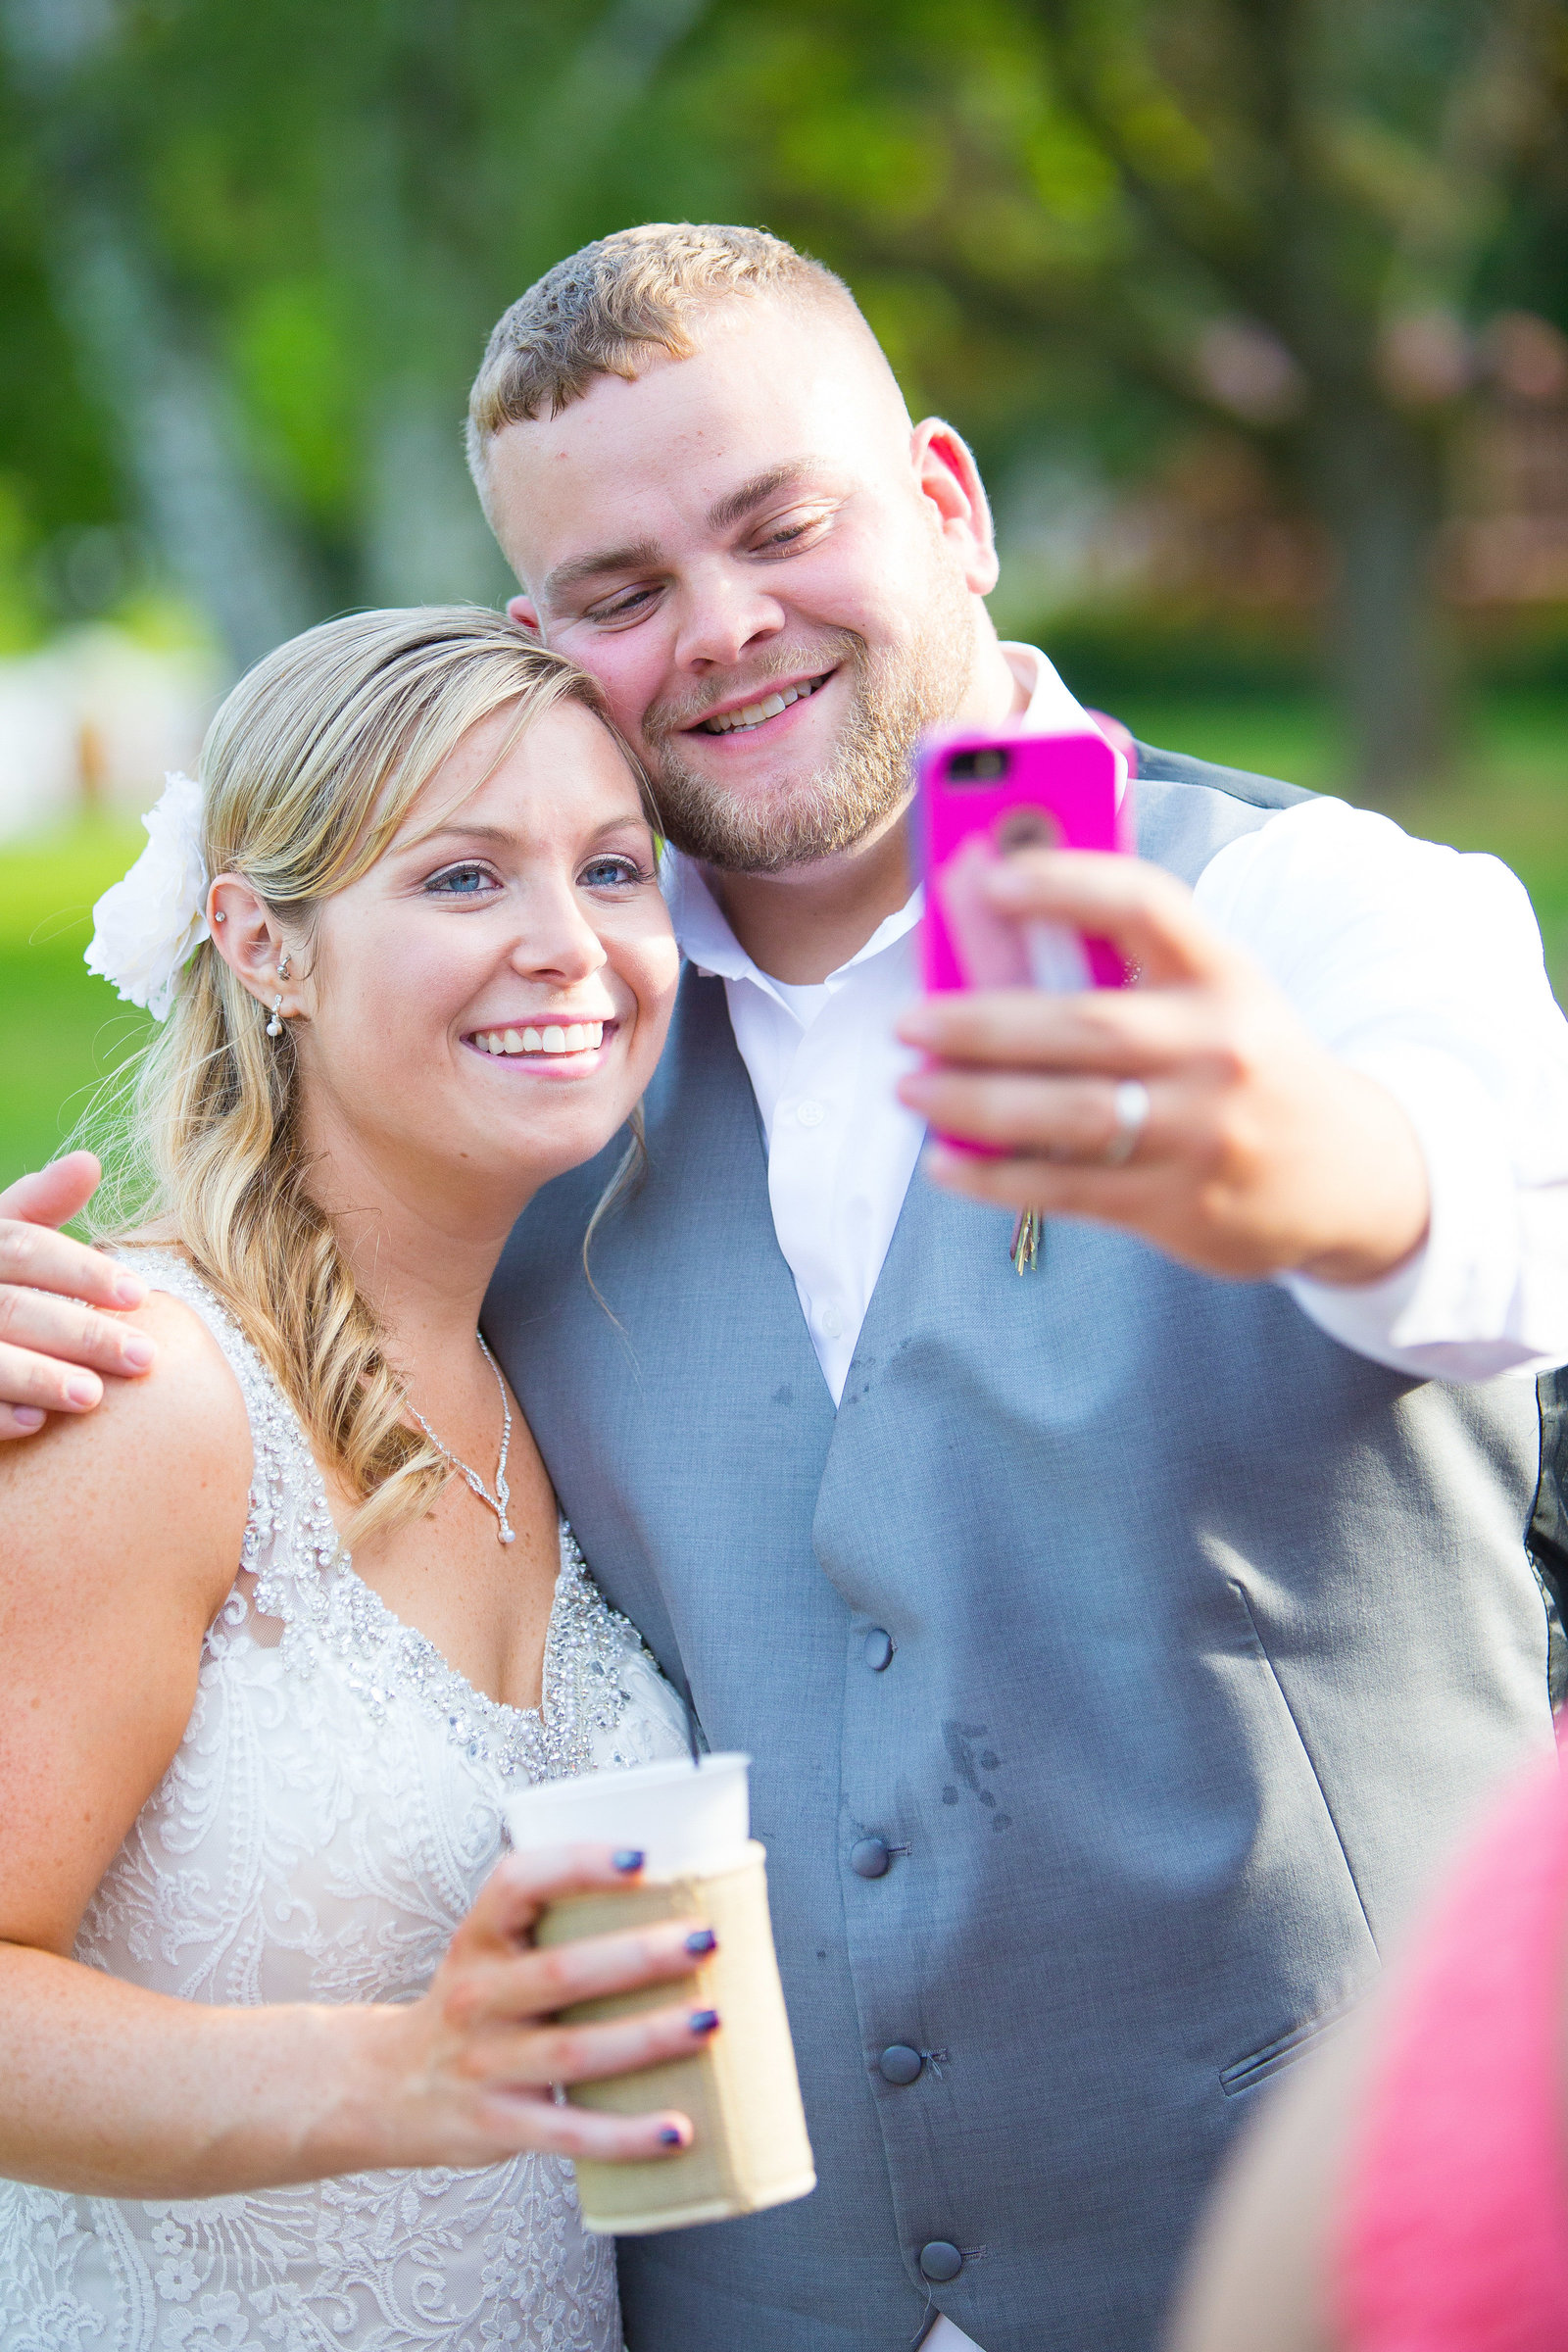 wedding photography bride and groomsen selfie